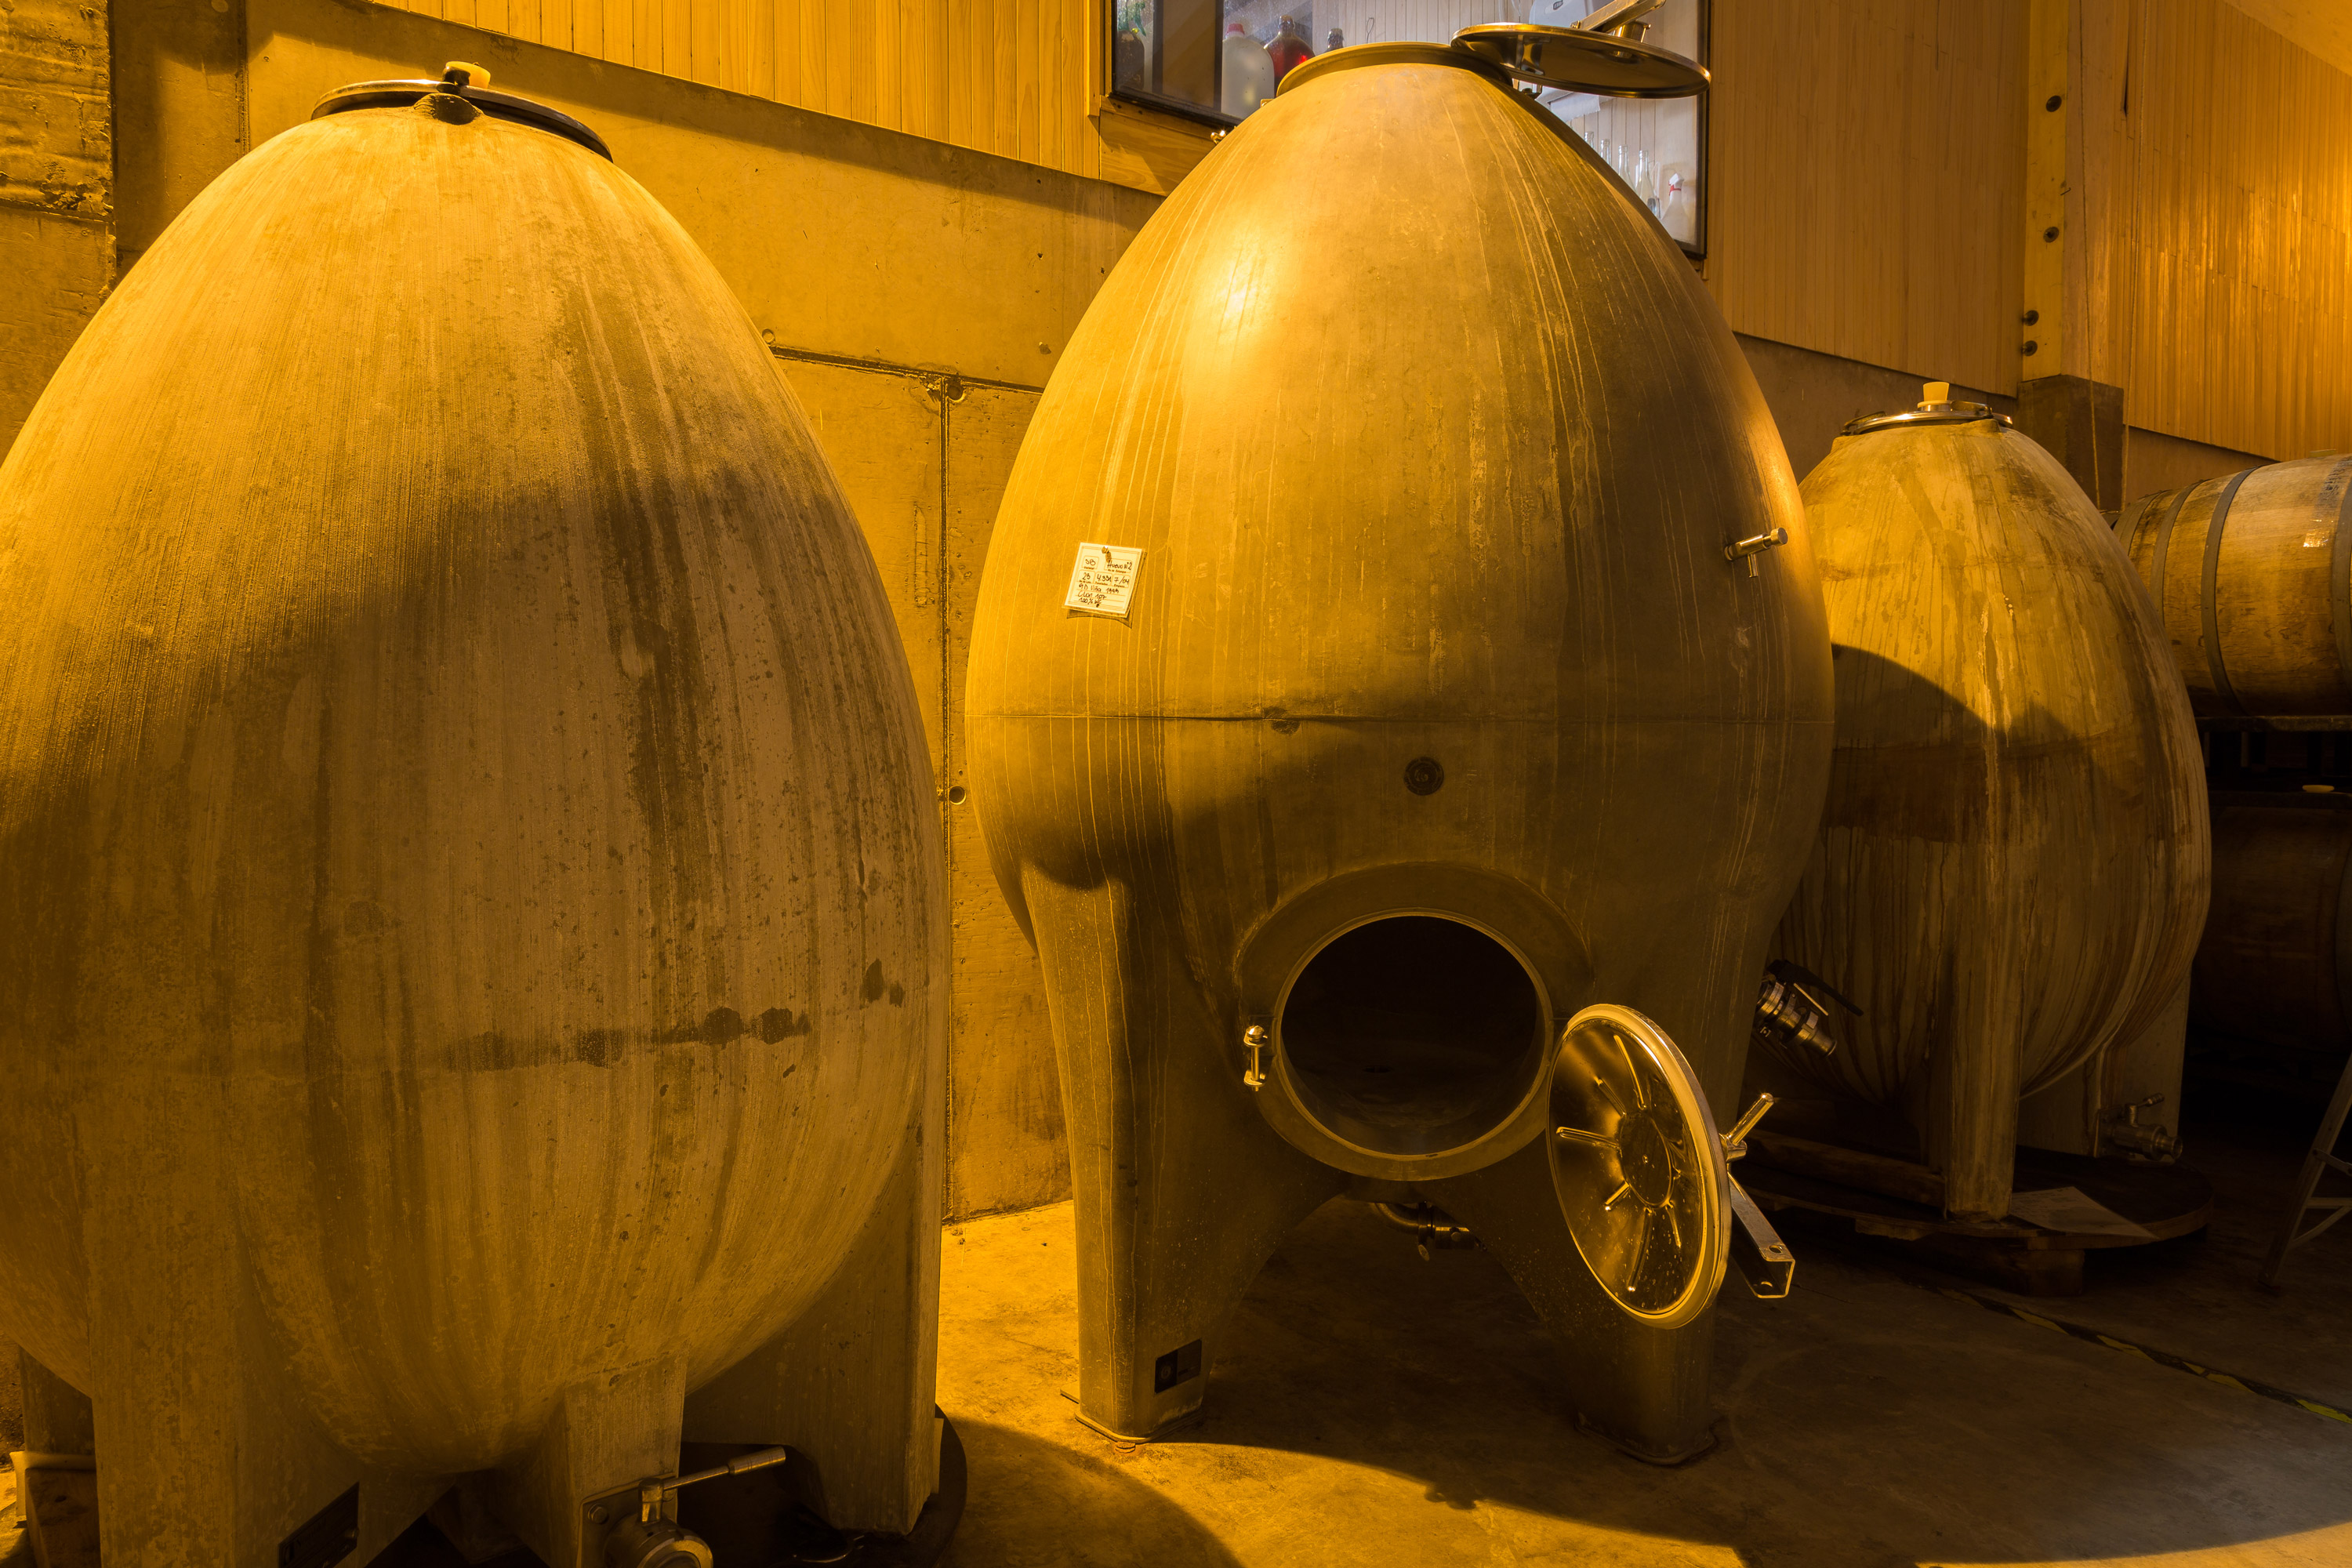 The concrete eggs at Kingston Family Vineyards